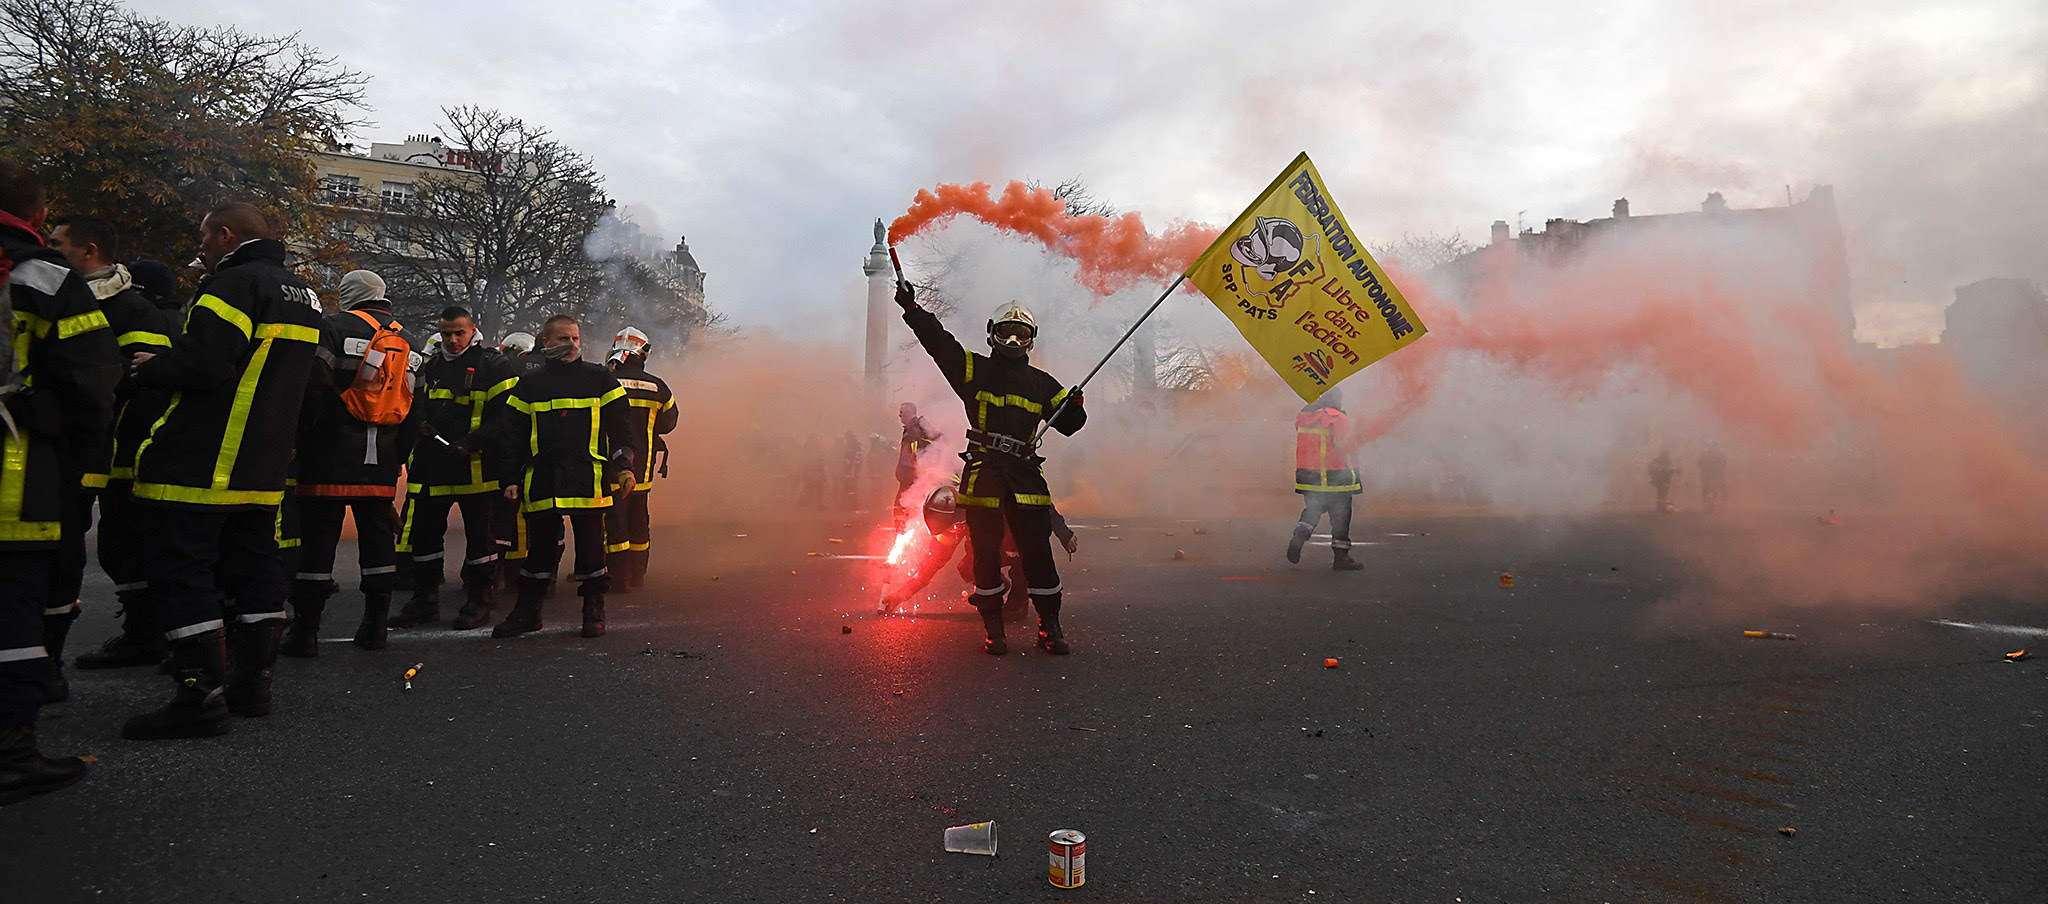 A firefighter brandishes a smoke flares as he and others demonstrate on Place de la Nation in Paris on November 24, 2016 as part of a nationwide strike to denounce violence against firefighters doing their job, budget cuts and downsizing. / AFP PHOTO / ALAIN JOCARDALAIN JOCARD/AFP/Getty Images